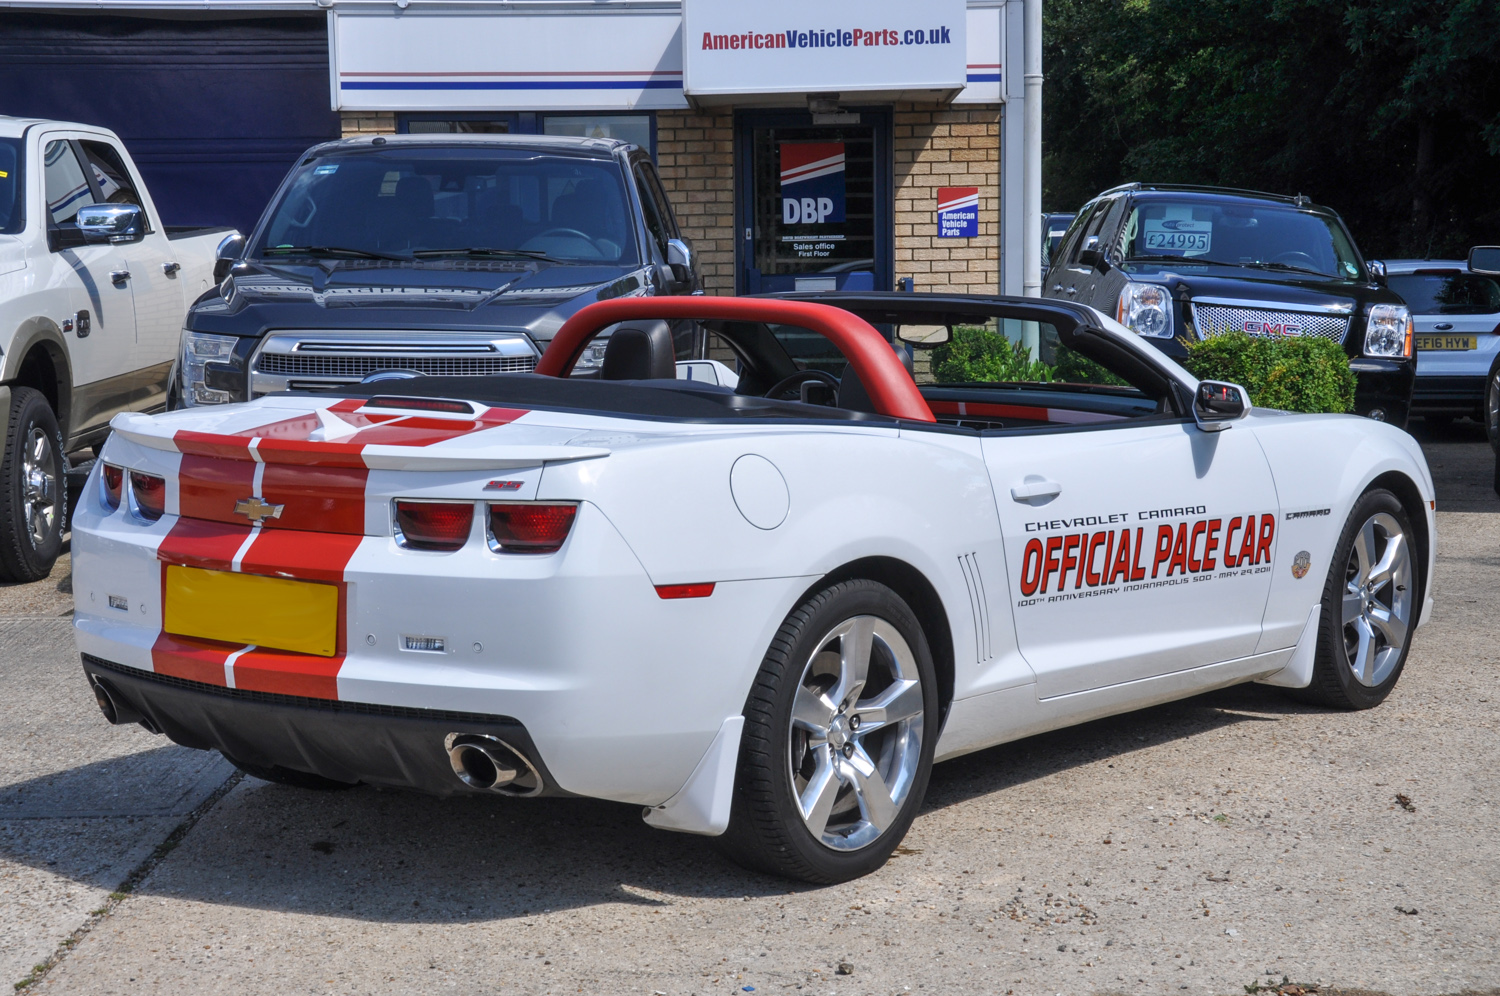 Chevrolet Camaro Pace Car Convertible Indy 500 Limited